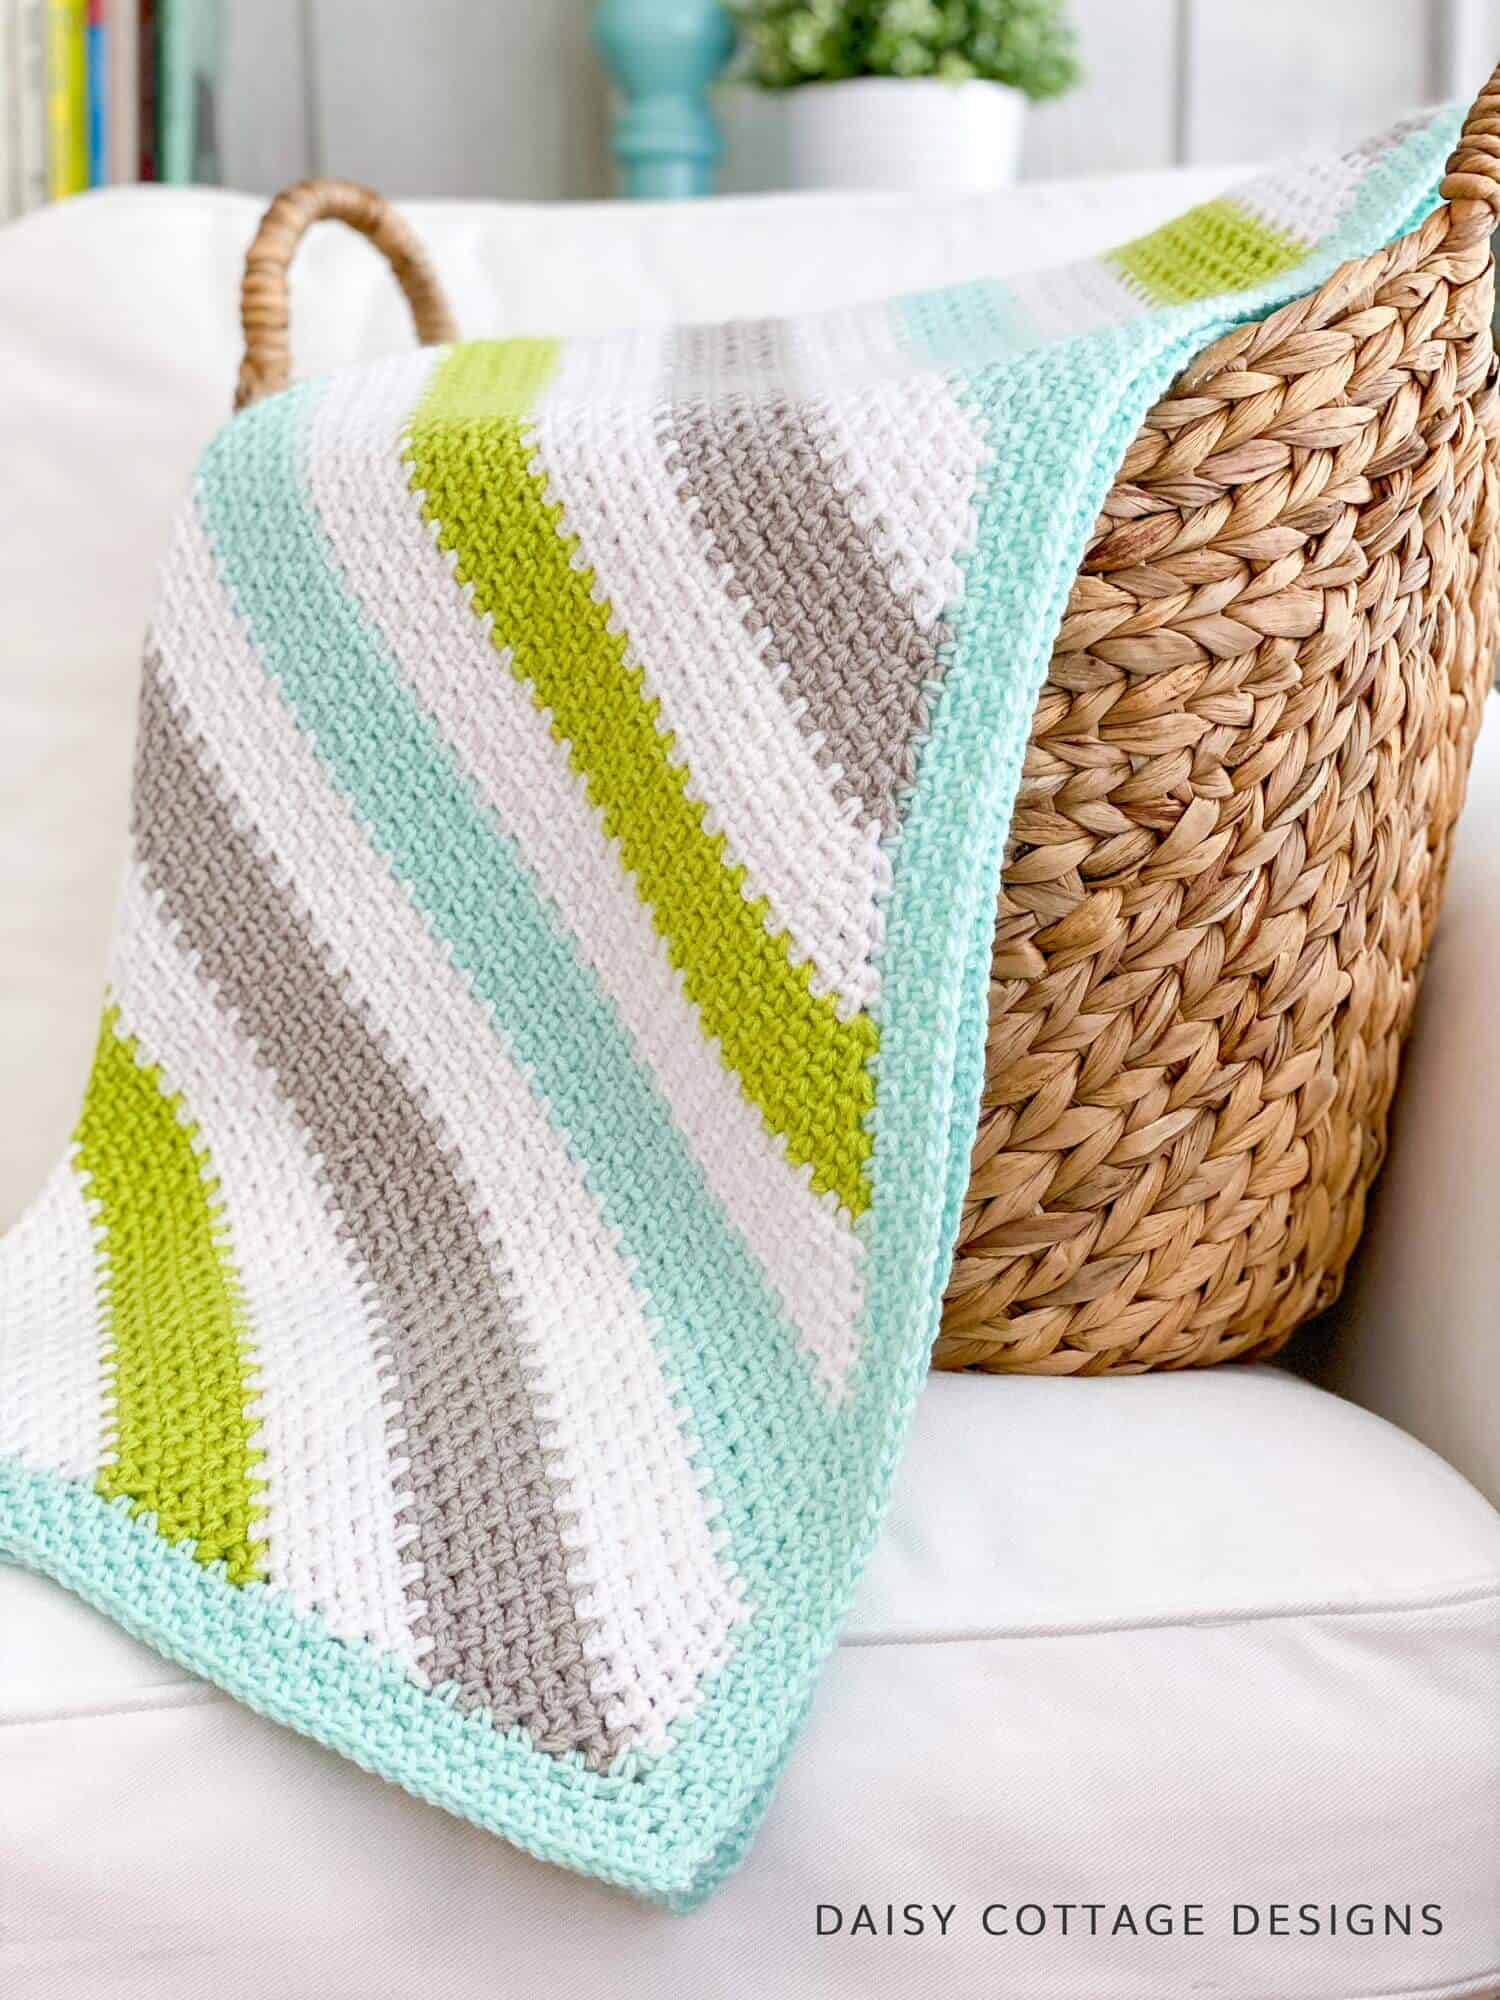 Fall in love with this corner to corner linen stitch crochet tutorial (aka the moss stitch & granite stitch). This crochet pattern is perfect for any skill level.